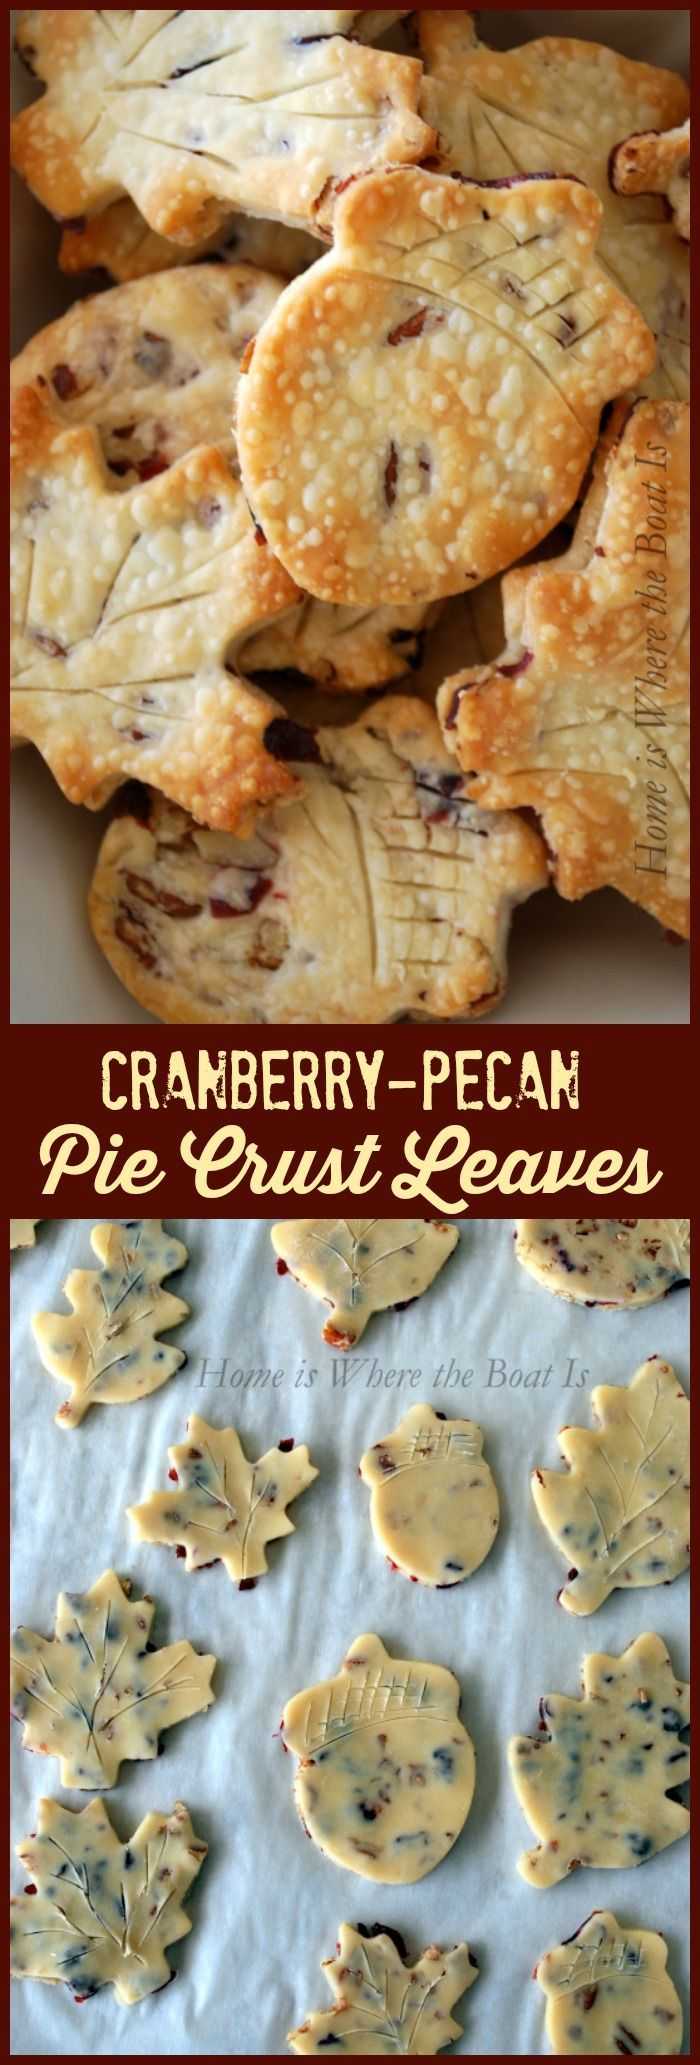 "Cranberry-Pecan Pie Crust Leaves Dress up your left over Thanksgiving turkey with Cranberry-Pecan Crusts for pot pie, piecrust leaf ""sandwiches"" of pecans and cranberries! 